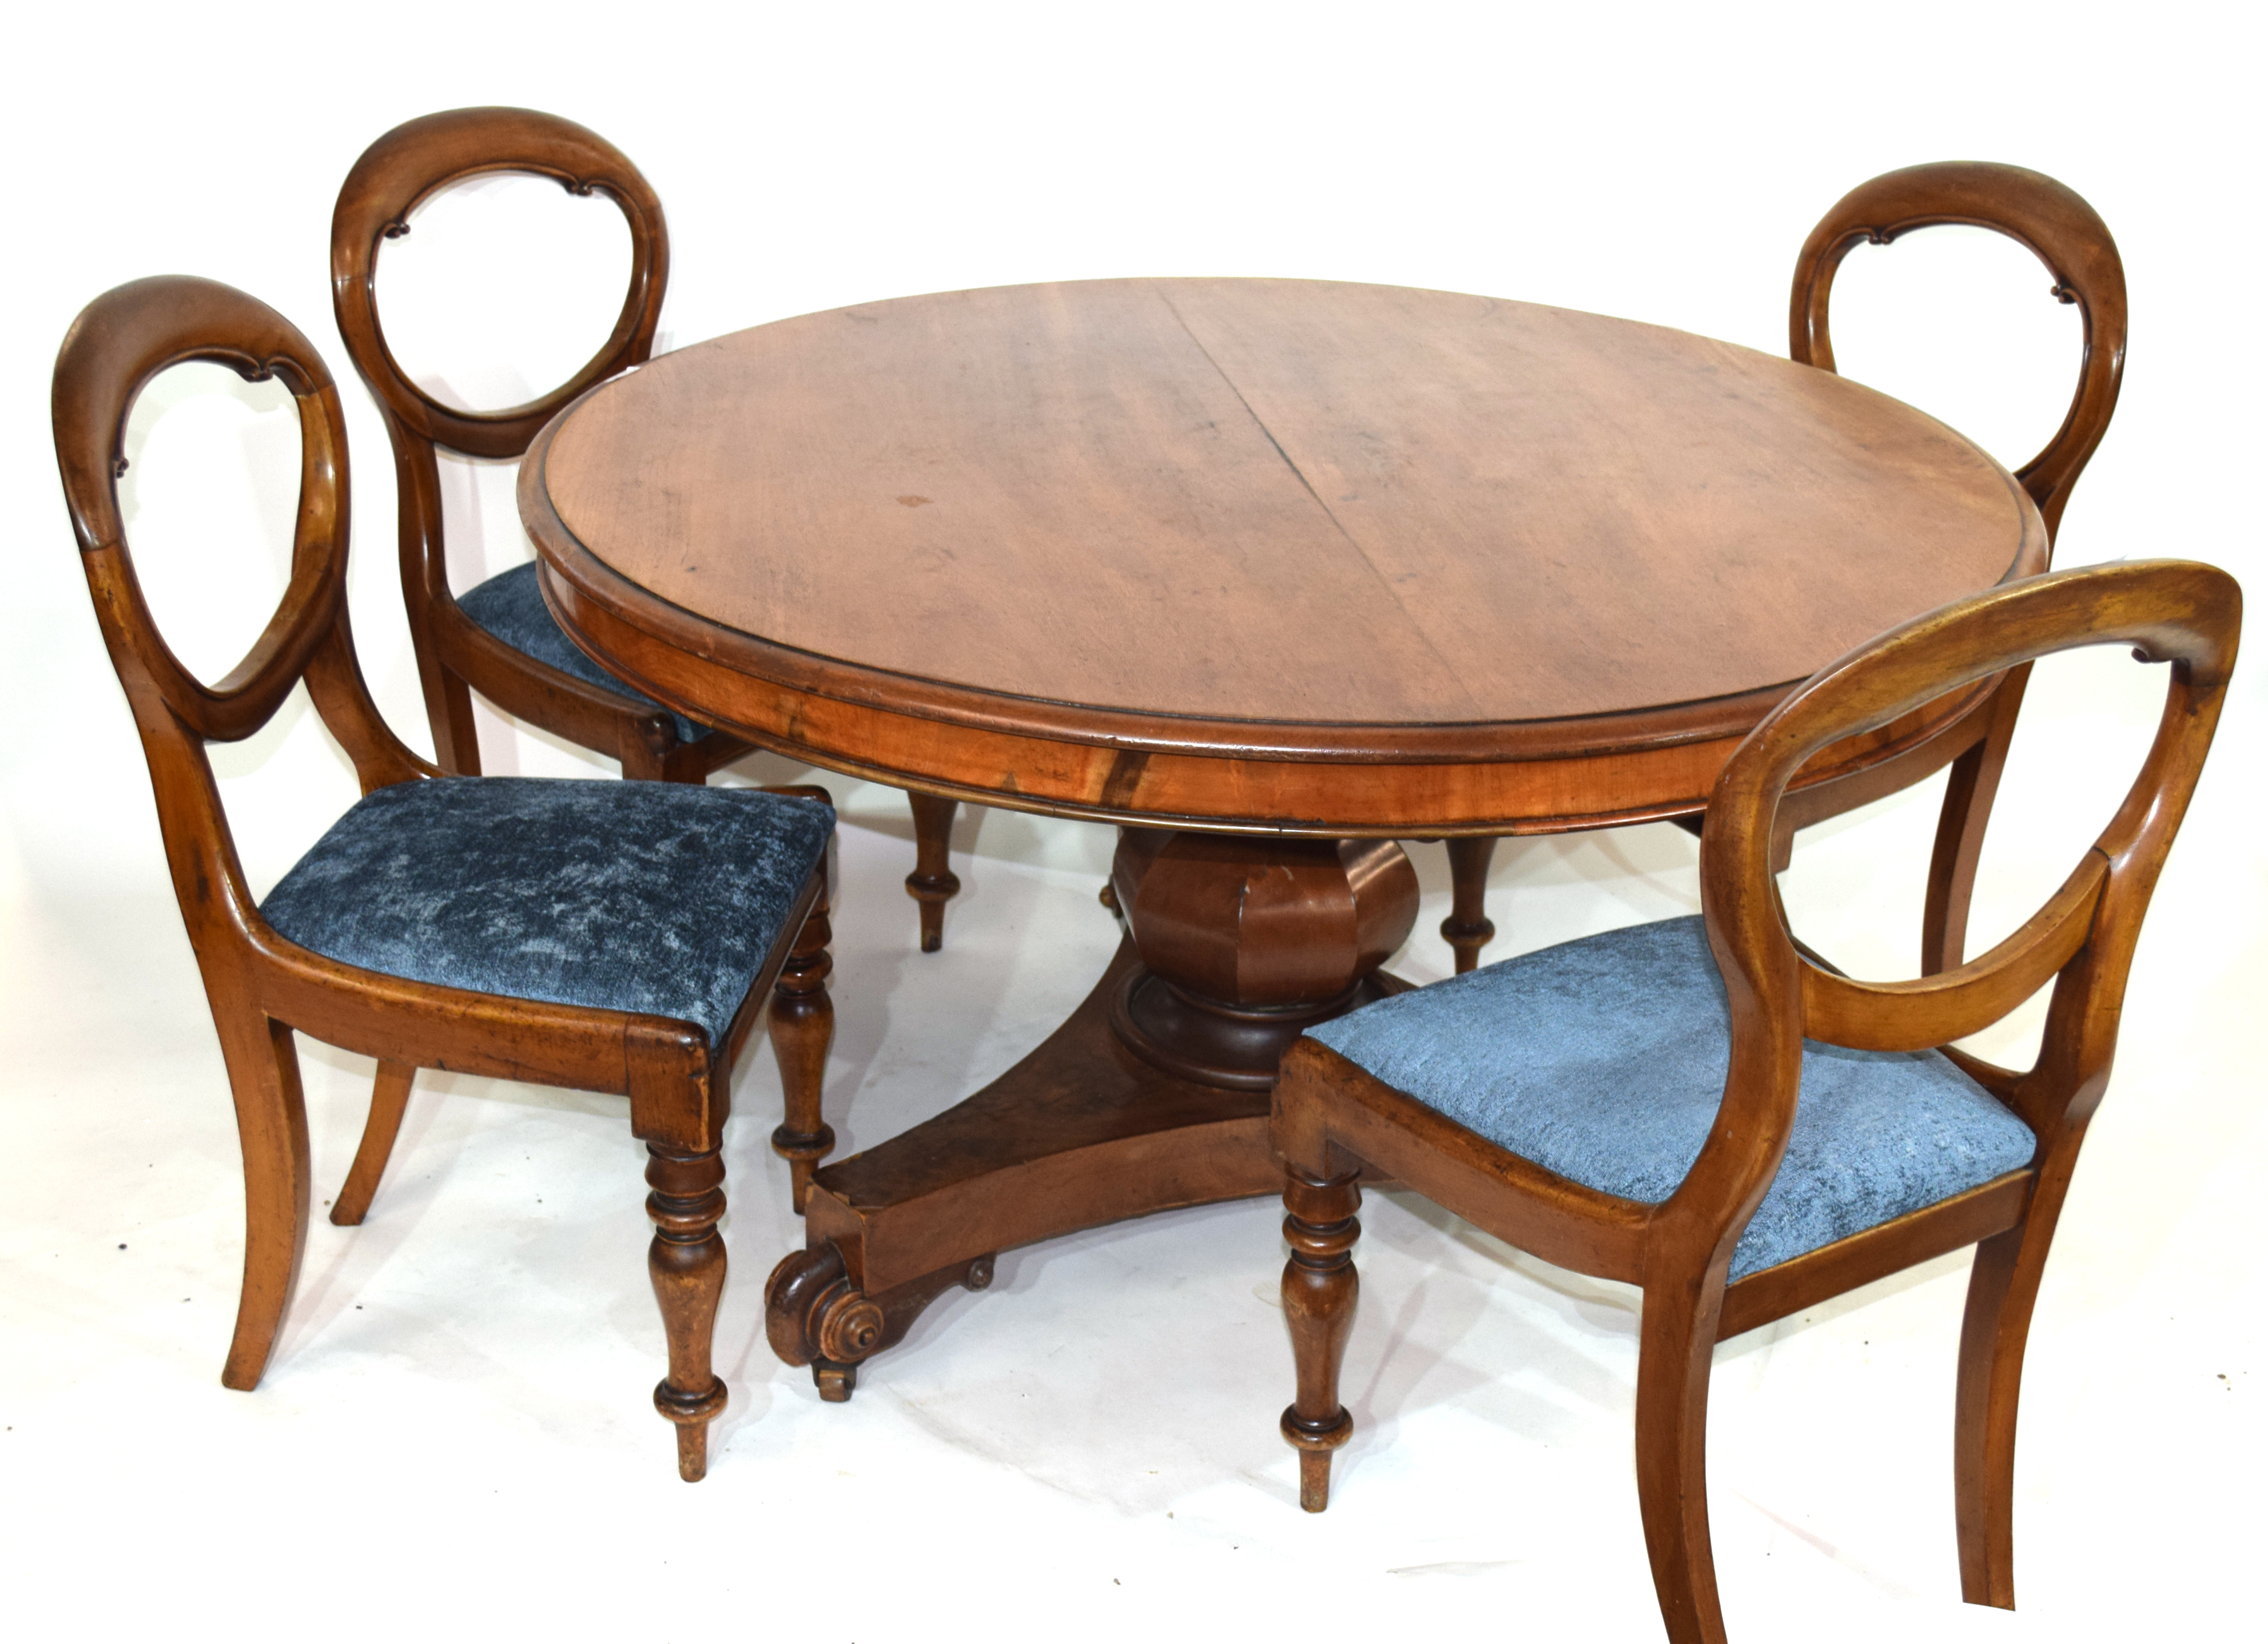 Victorian mahogany pedestal dining table, the circular top over a bulbous pedestal raised on a - Image 2 of 6